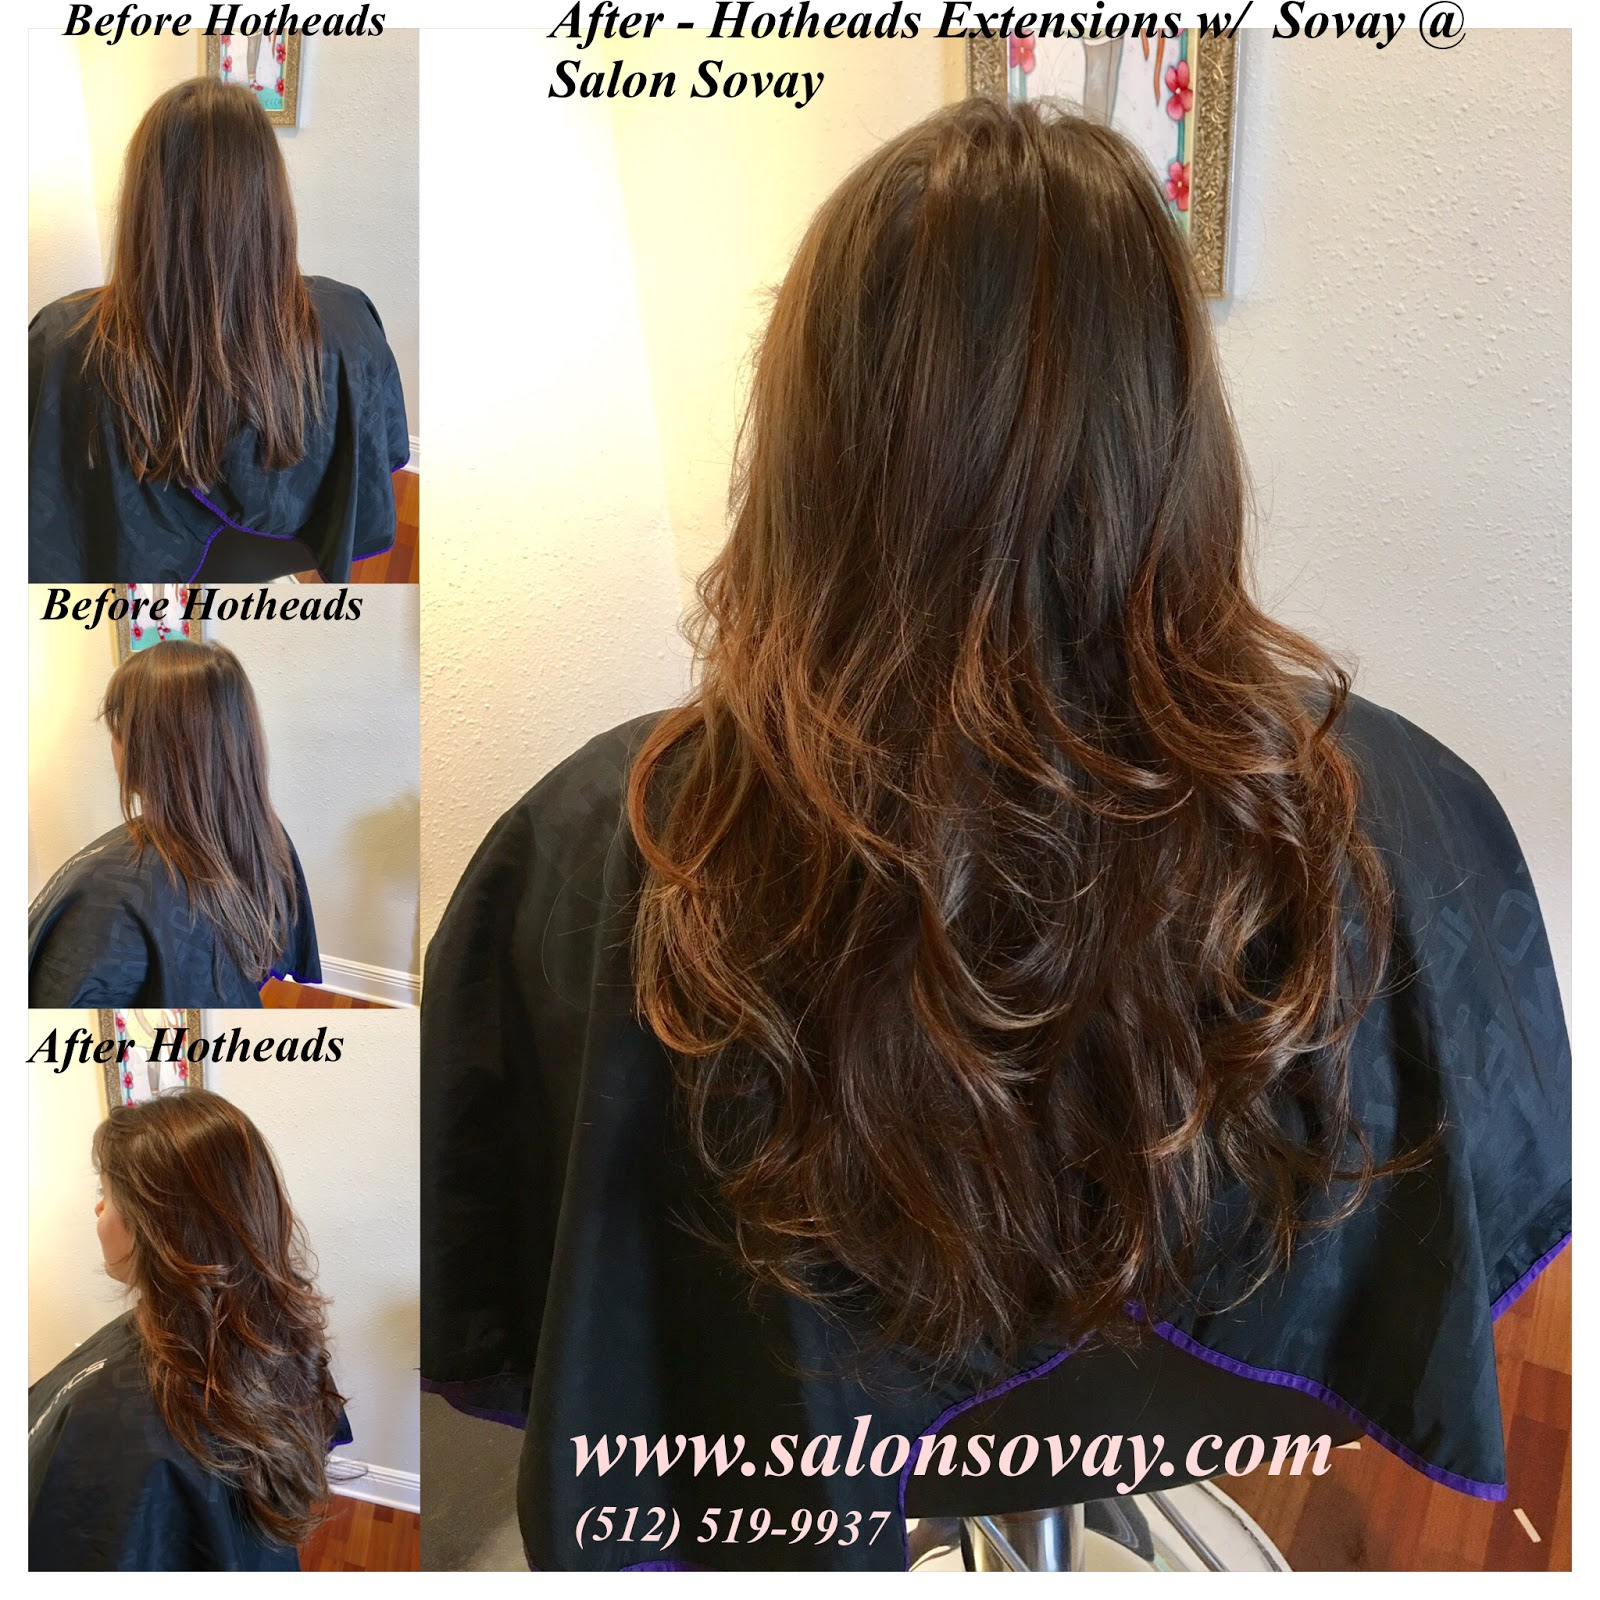 Salon Sovay Hotheads Hair Extensions In Austin Texas By Sovay